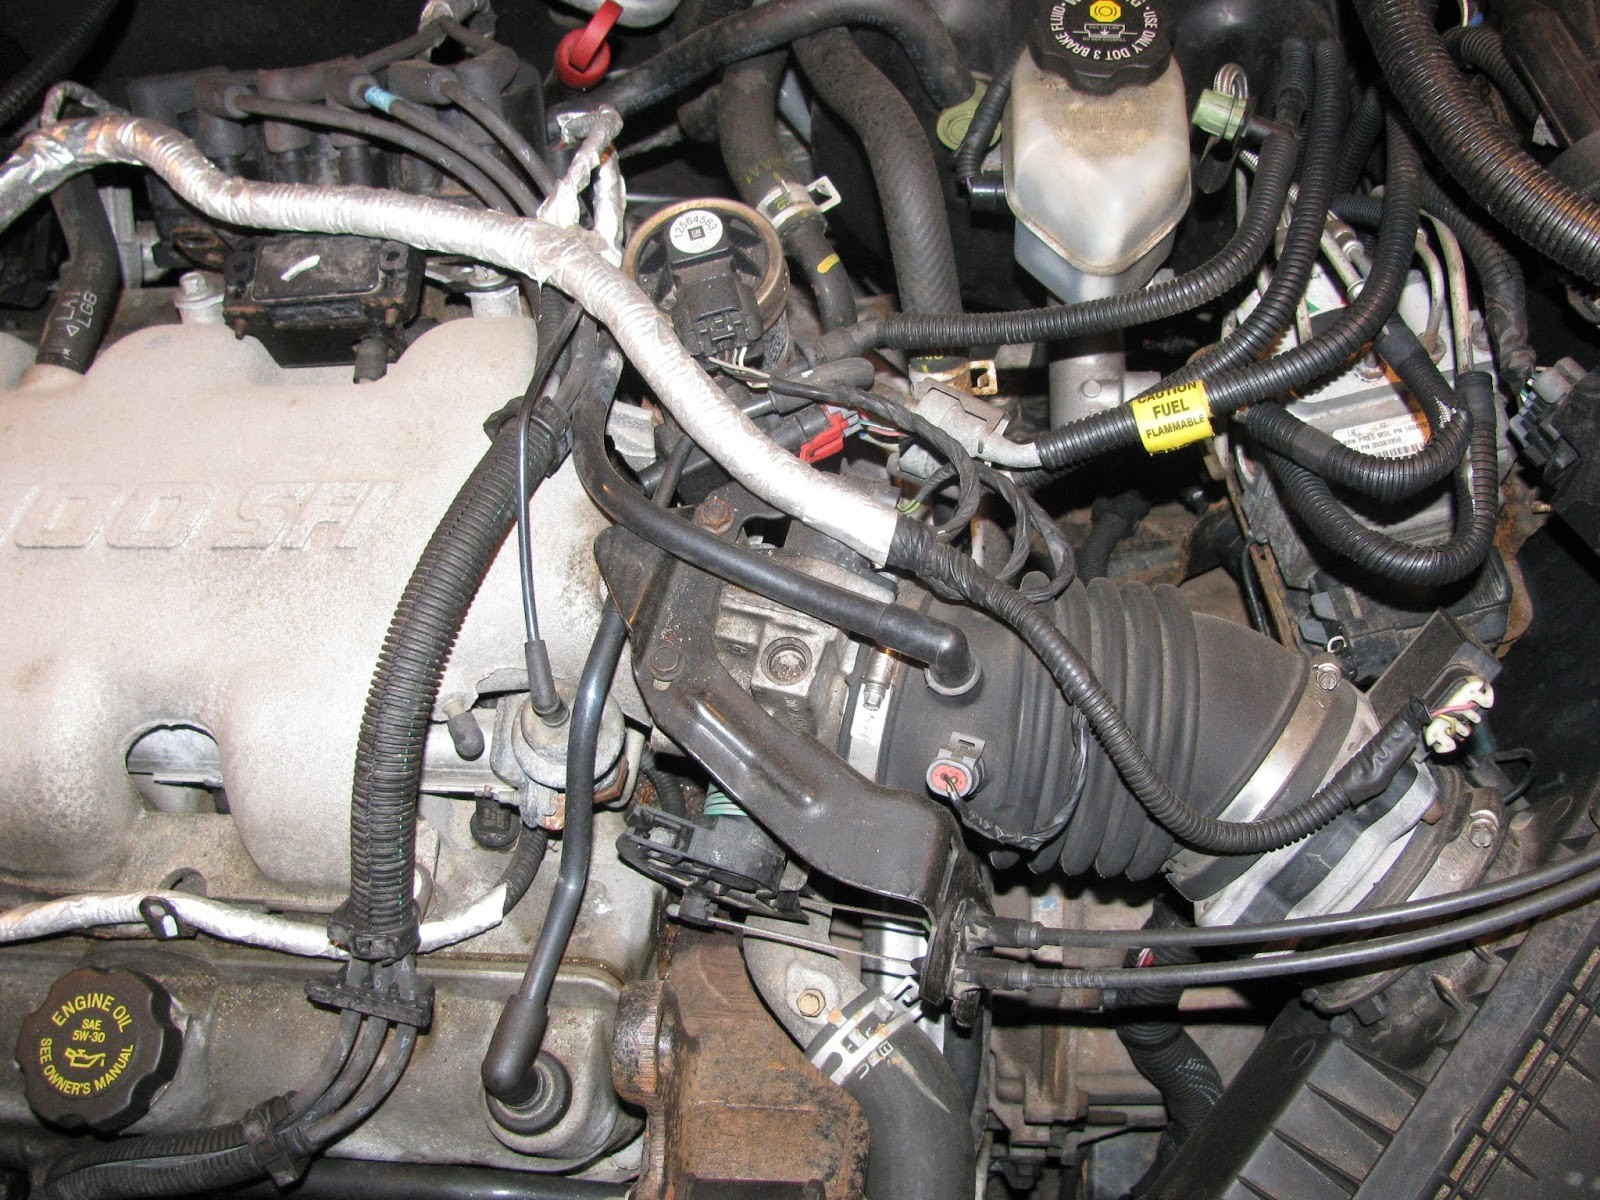 1997 Cadillac Deville Engine Diagram Special 2001 Oldsmobile Alero Engine Diagram Lovely Location Od Of 1997 Cadillac Deville Engine Diagram